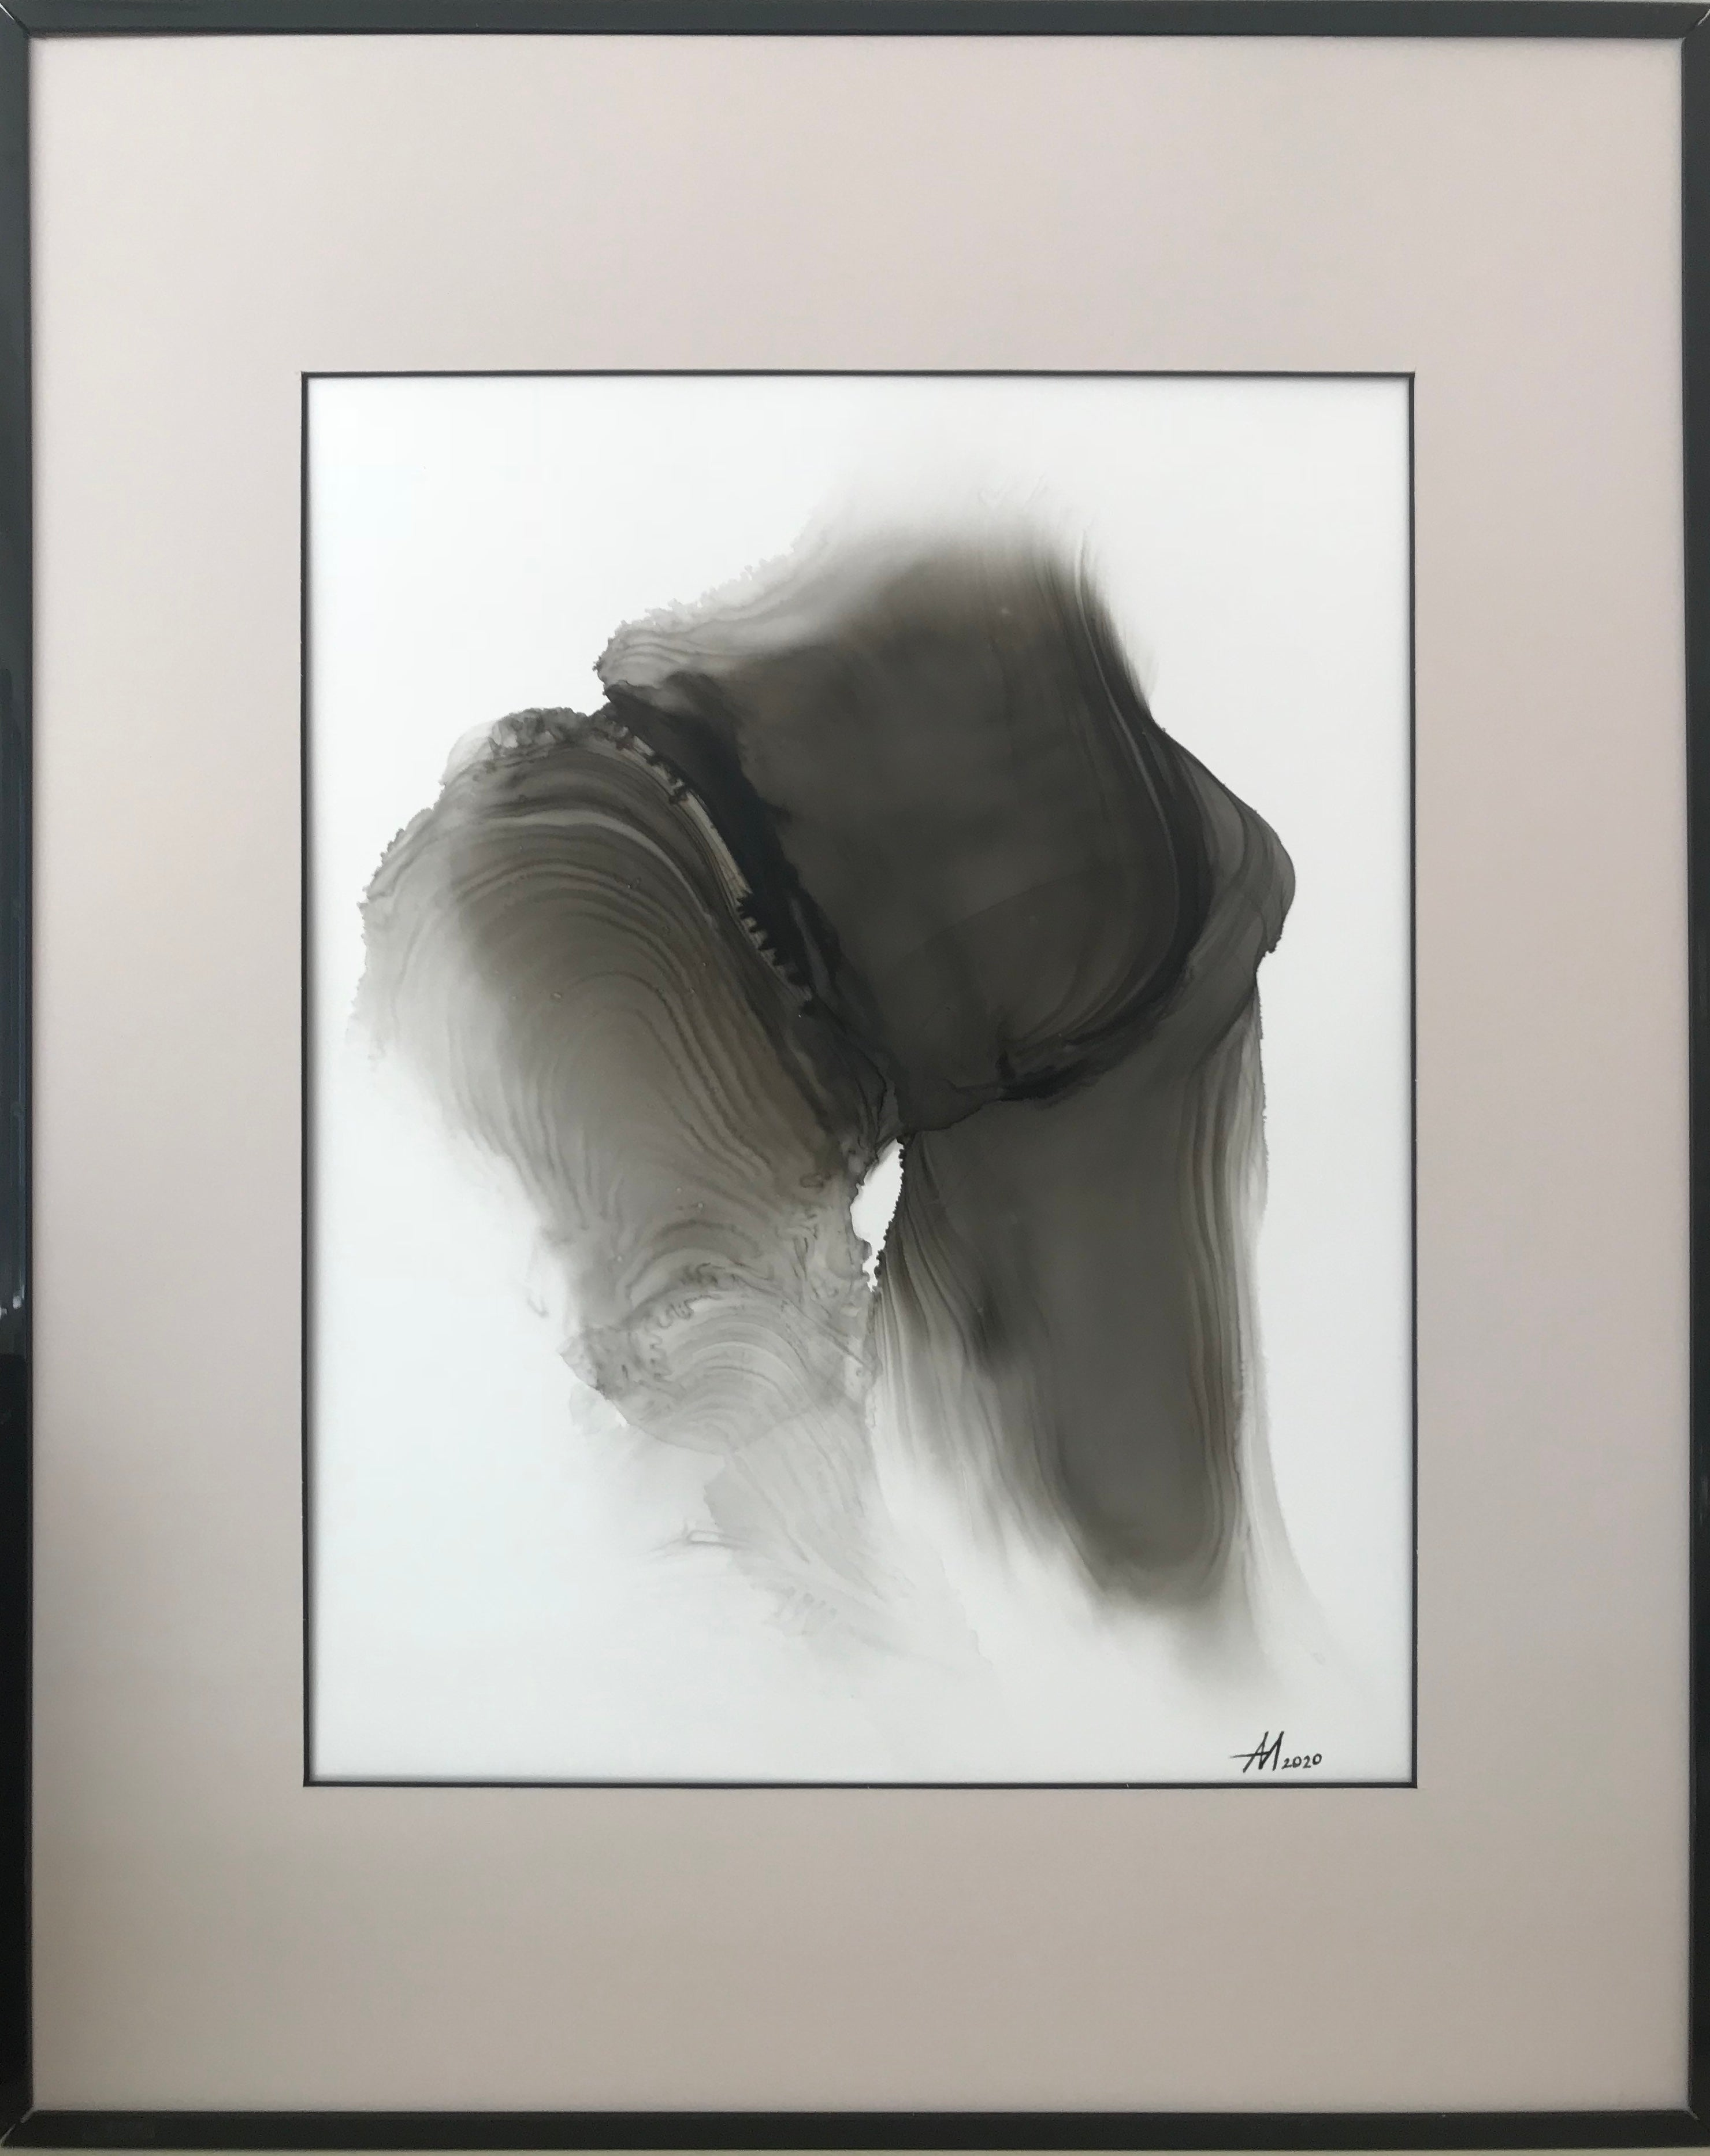 Feelings (wave)- abstract painting, made in beige, black and white color